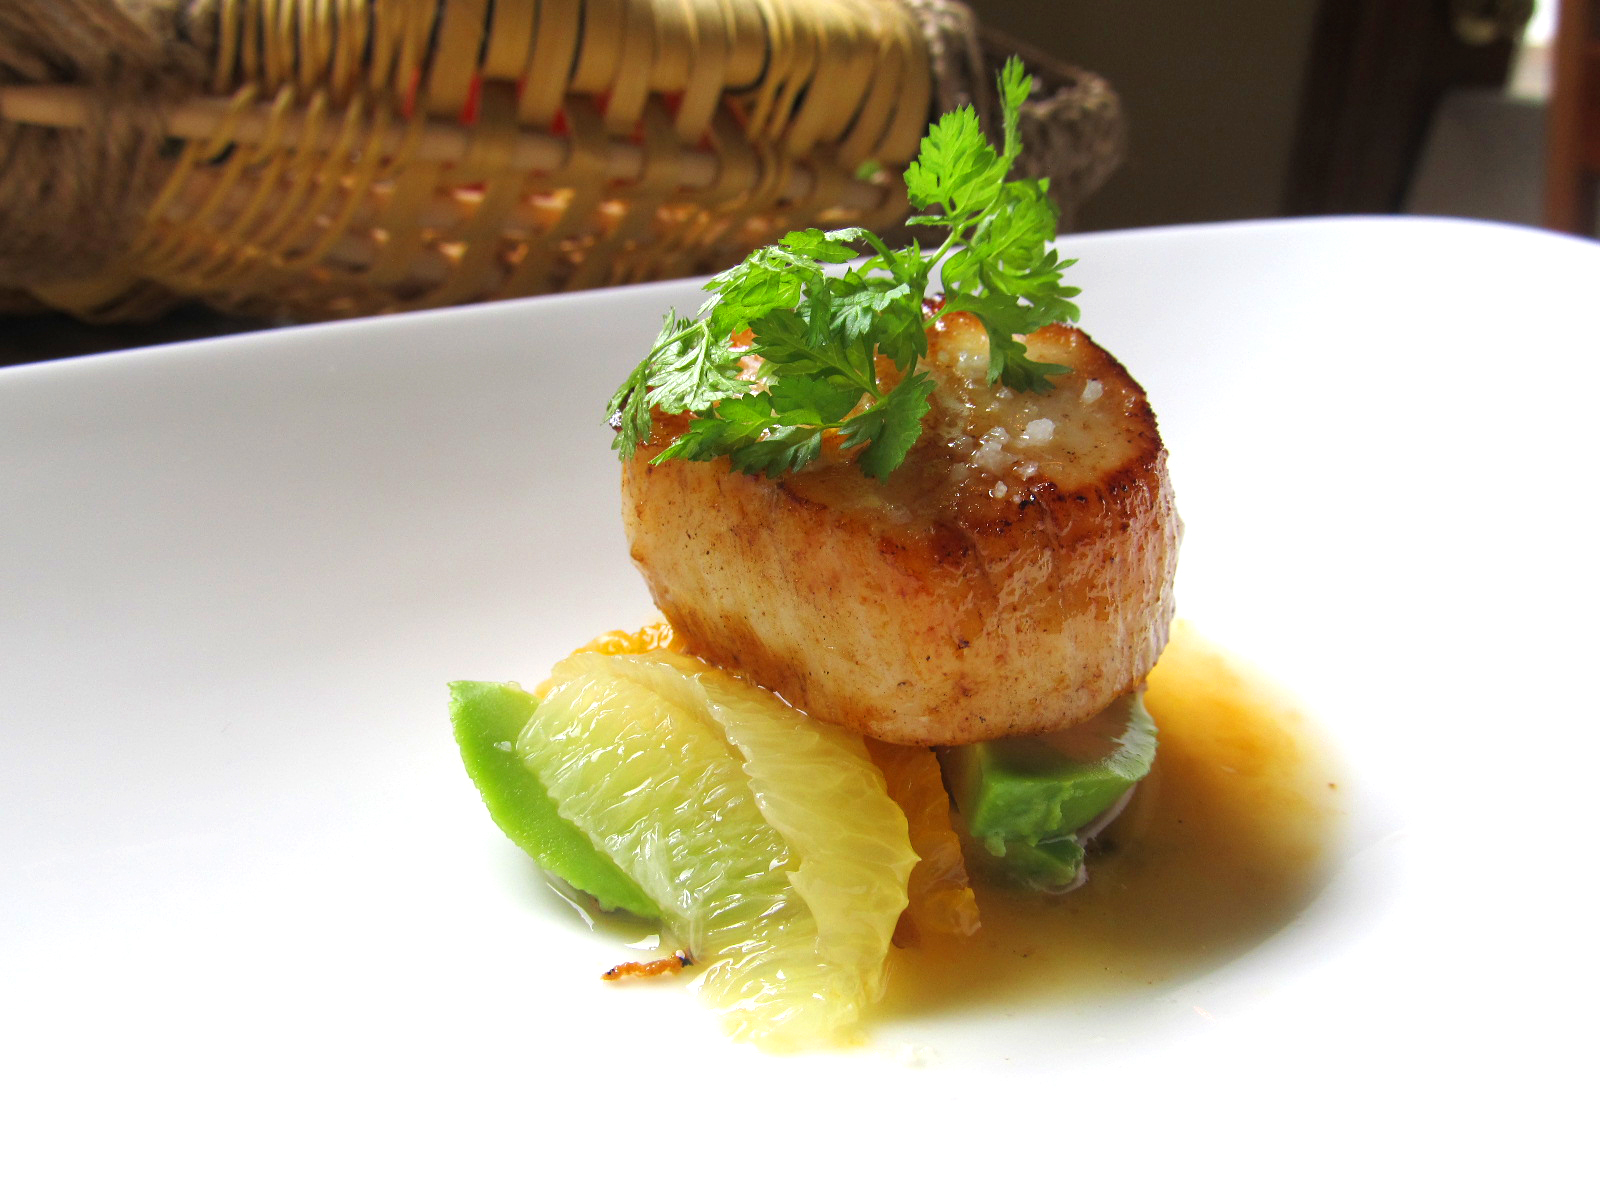 Scallop with Citrus and Avocado2.jpg